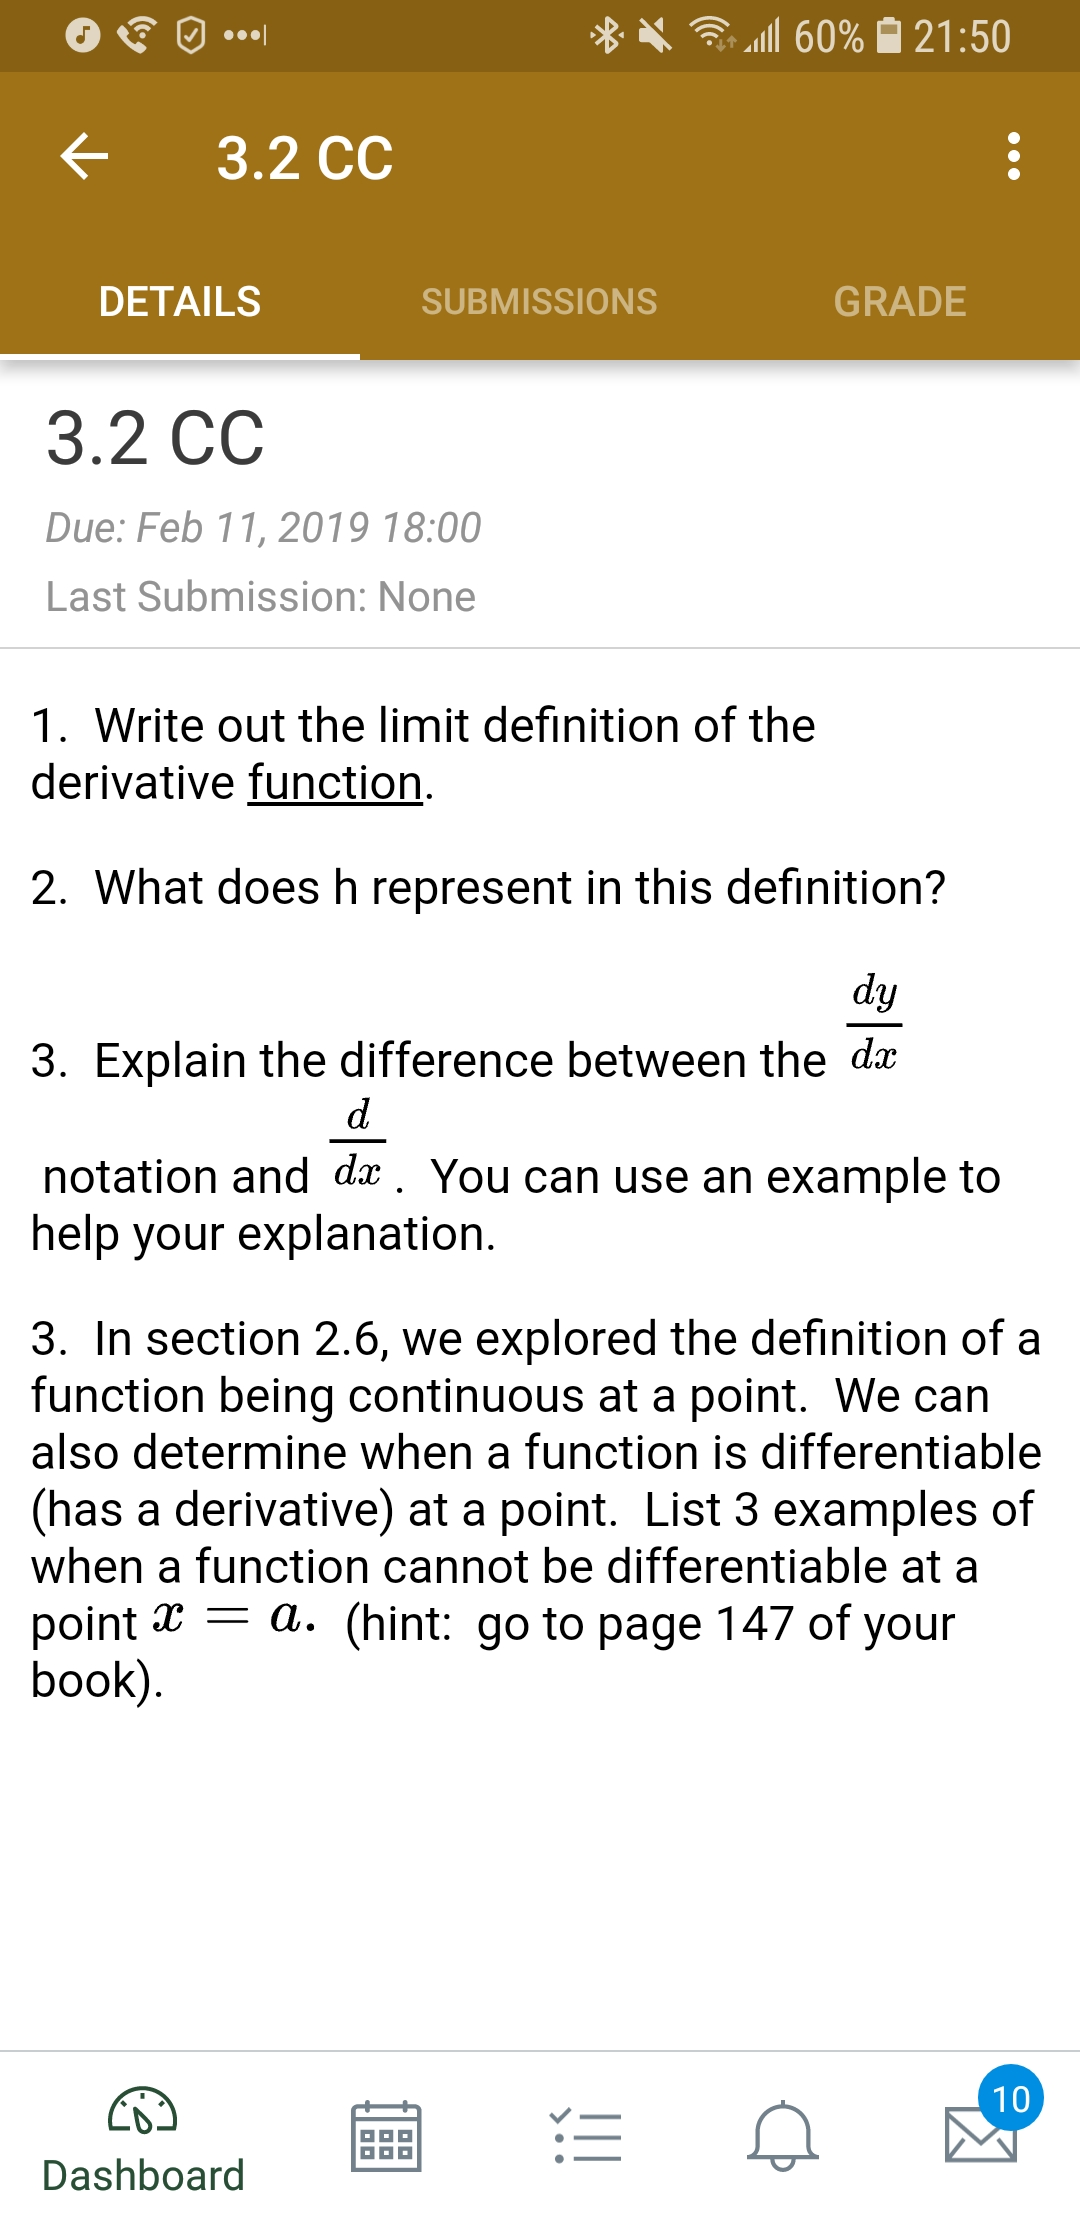 X .111 60% 21:50 < 3.2 cc DETAILS SUBMISSIONS GRADE 3.2 CC Due: Feb 11, 2019 18:00 Last Submission: None 1. Write out the limit definition of the derivative function 2. What does h represent in this definition? 3. Explain the difference between the dx notation and dx. You can use an example to help your explanation 3. In section 2.6, we explored the definition of a function being continuous at a point. We can also determine when a function is differentiable (has a derivative) at a point. List 3 examples of when a function cannot be differentiable at a point x - a. (hint: go to page 147 of your book Dashboard